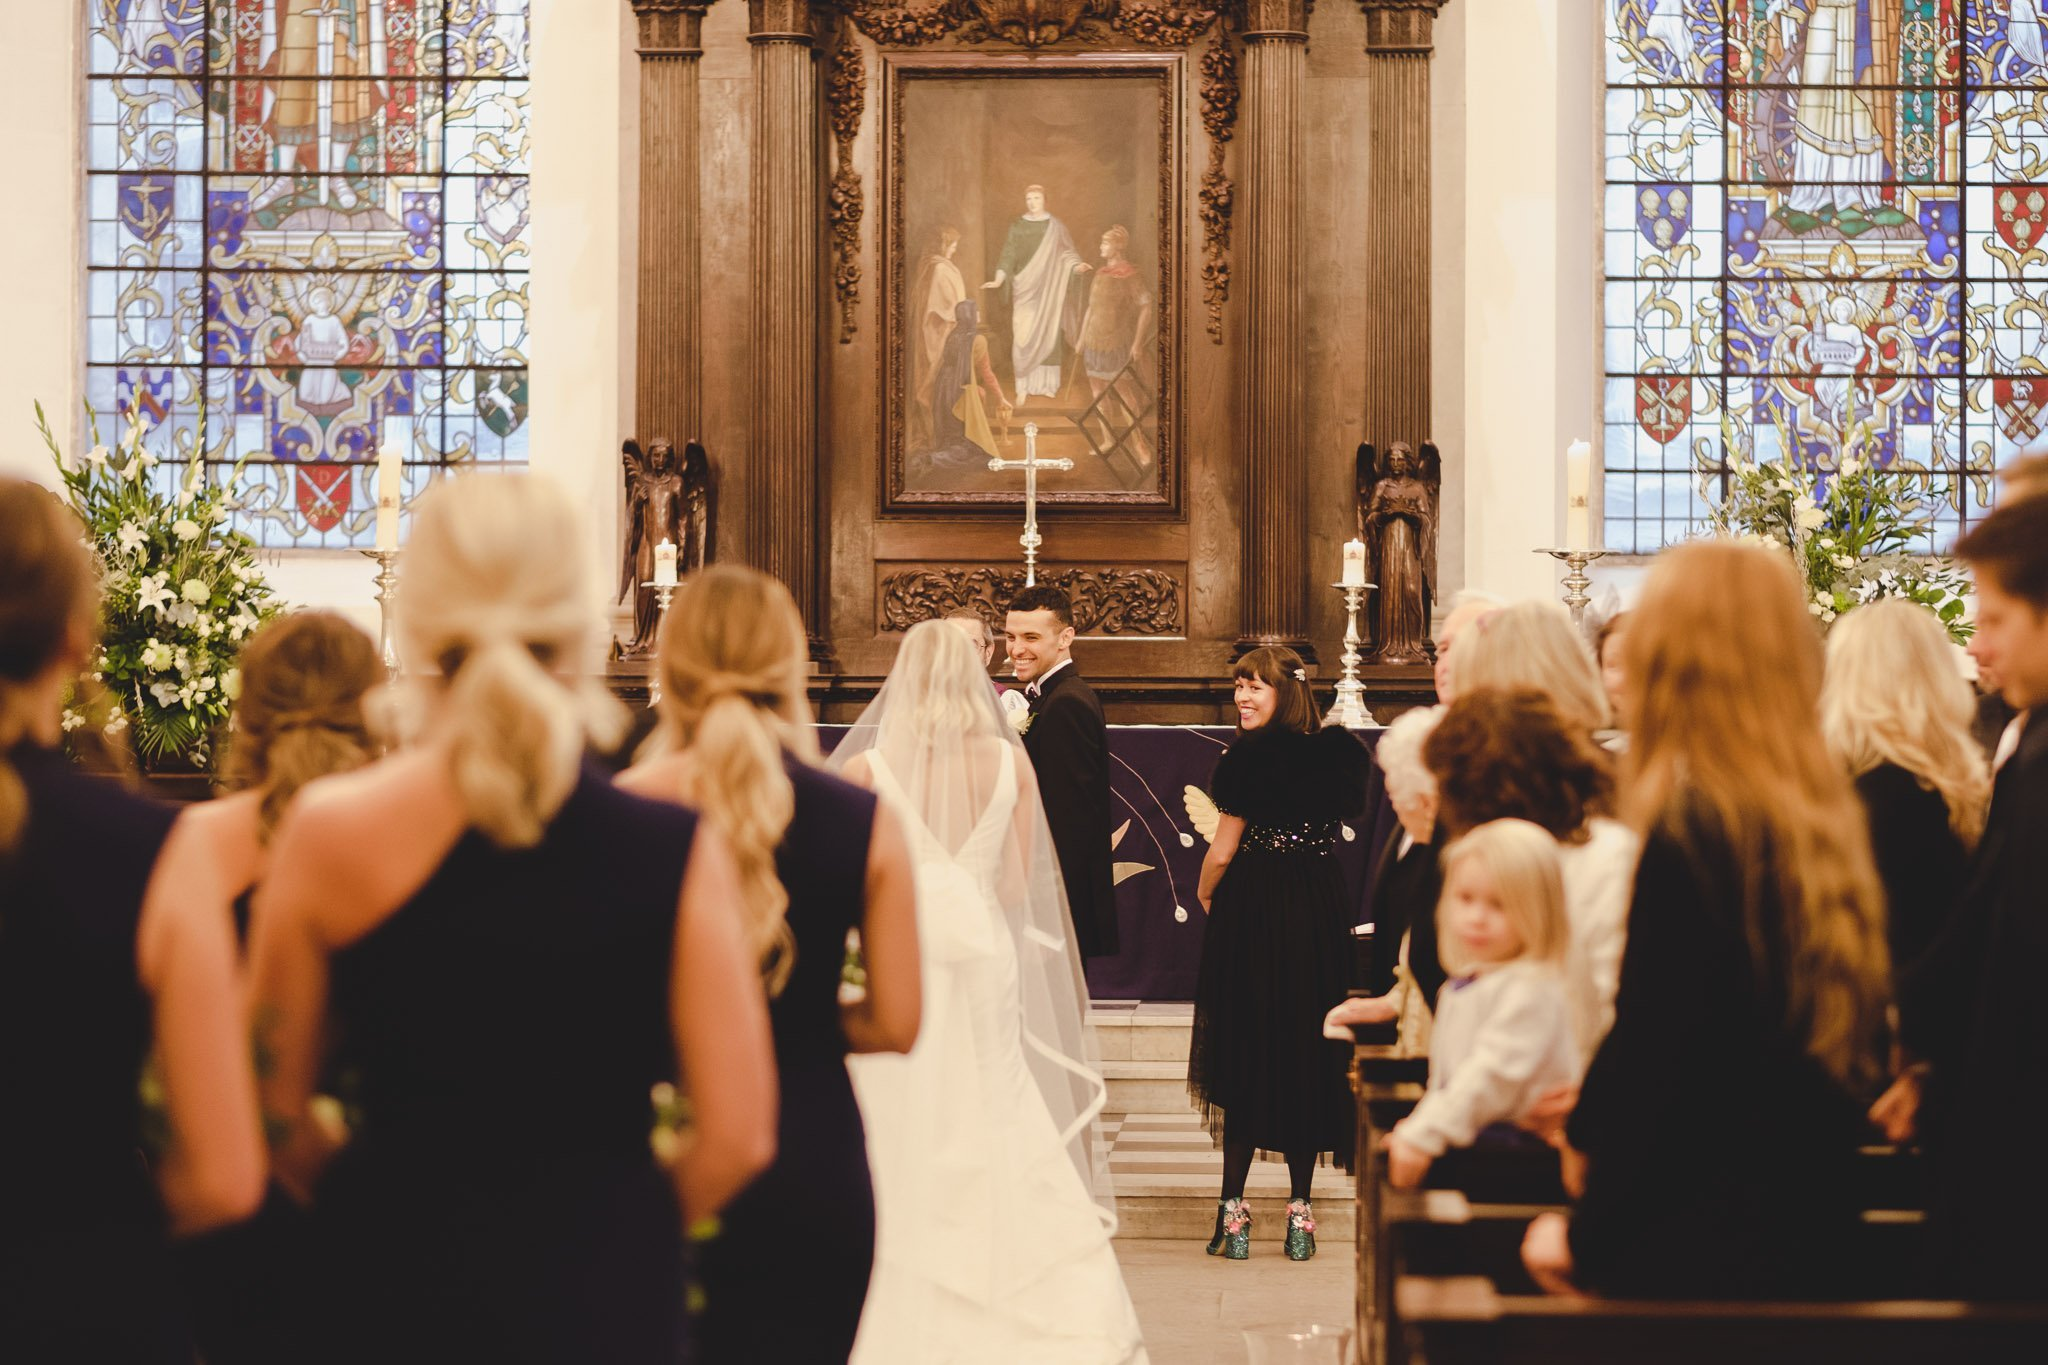 Bride & Groom first look at St Lawrence Jewry wedding Guildhall